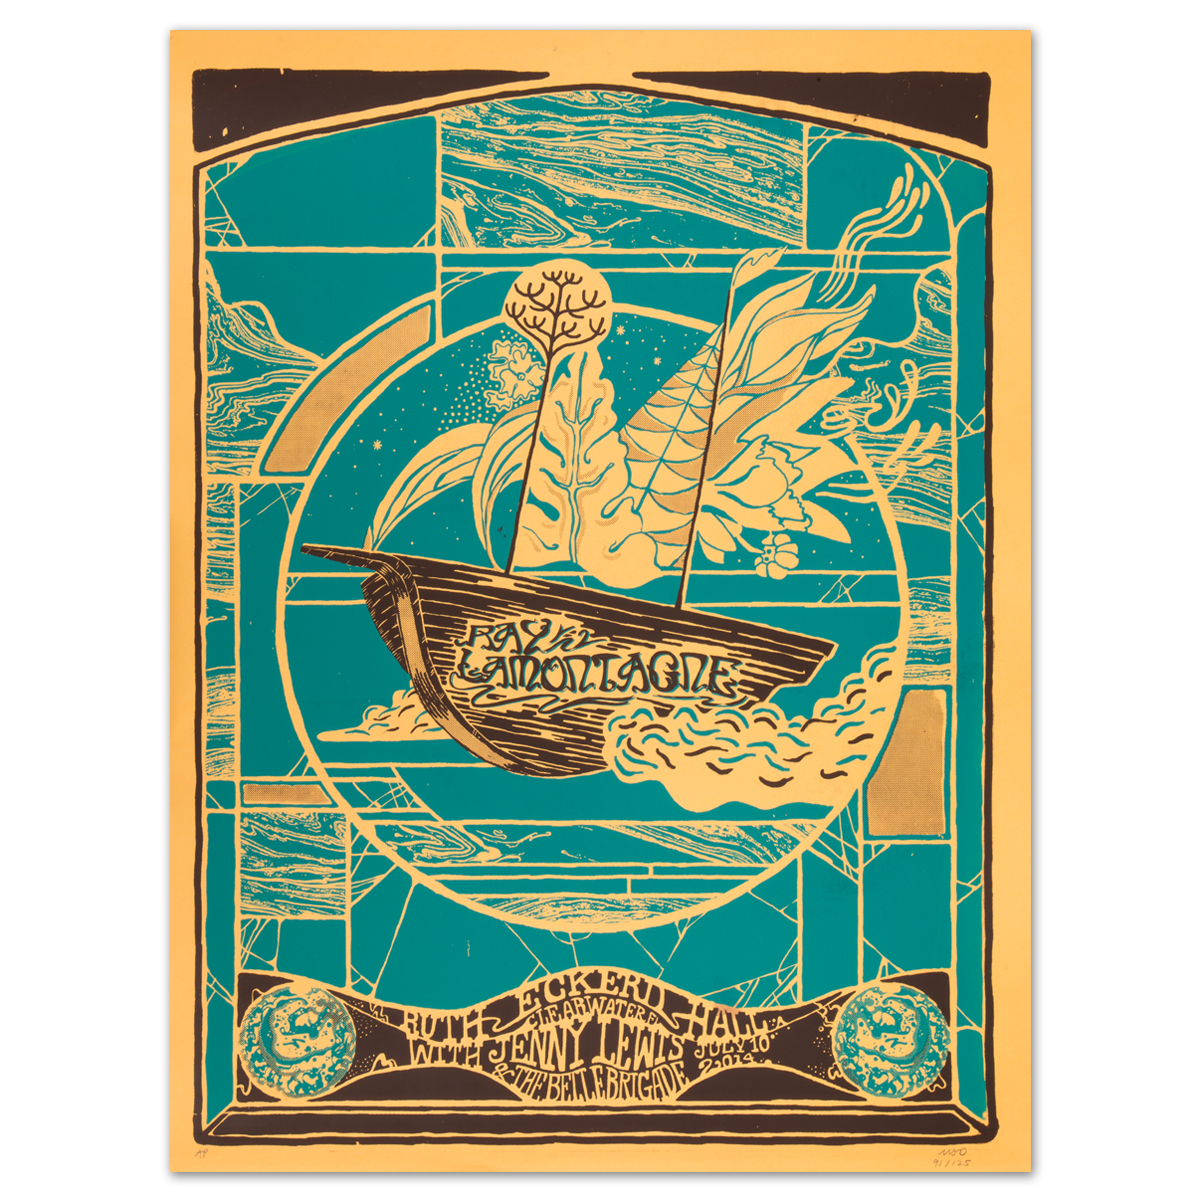 Ray LaMontagne 2014 Clearwater, FL Event Poster